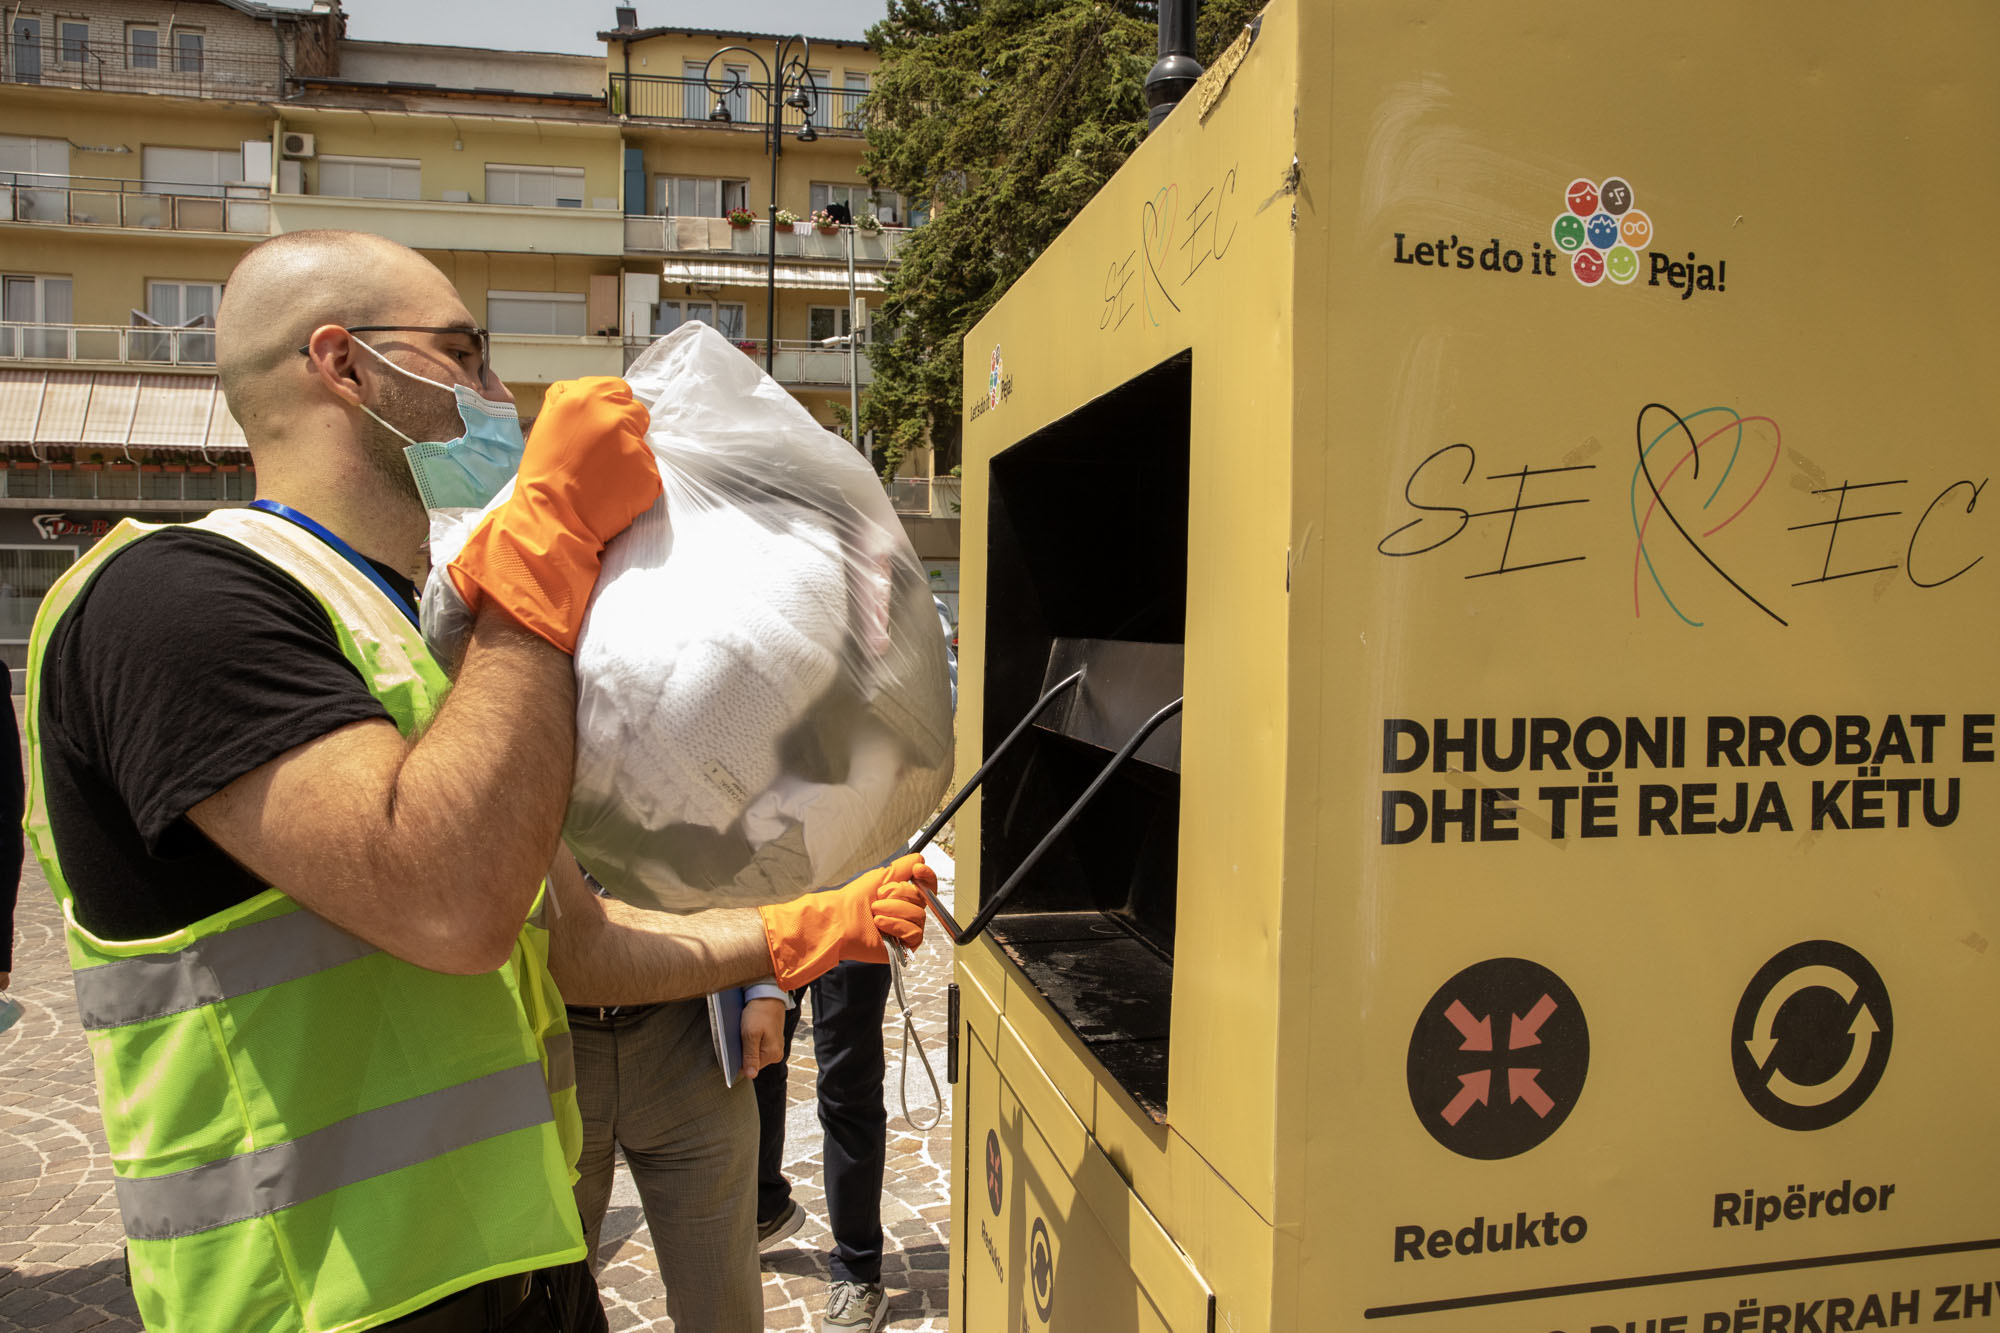 Making recycling fashionable in Kosovo